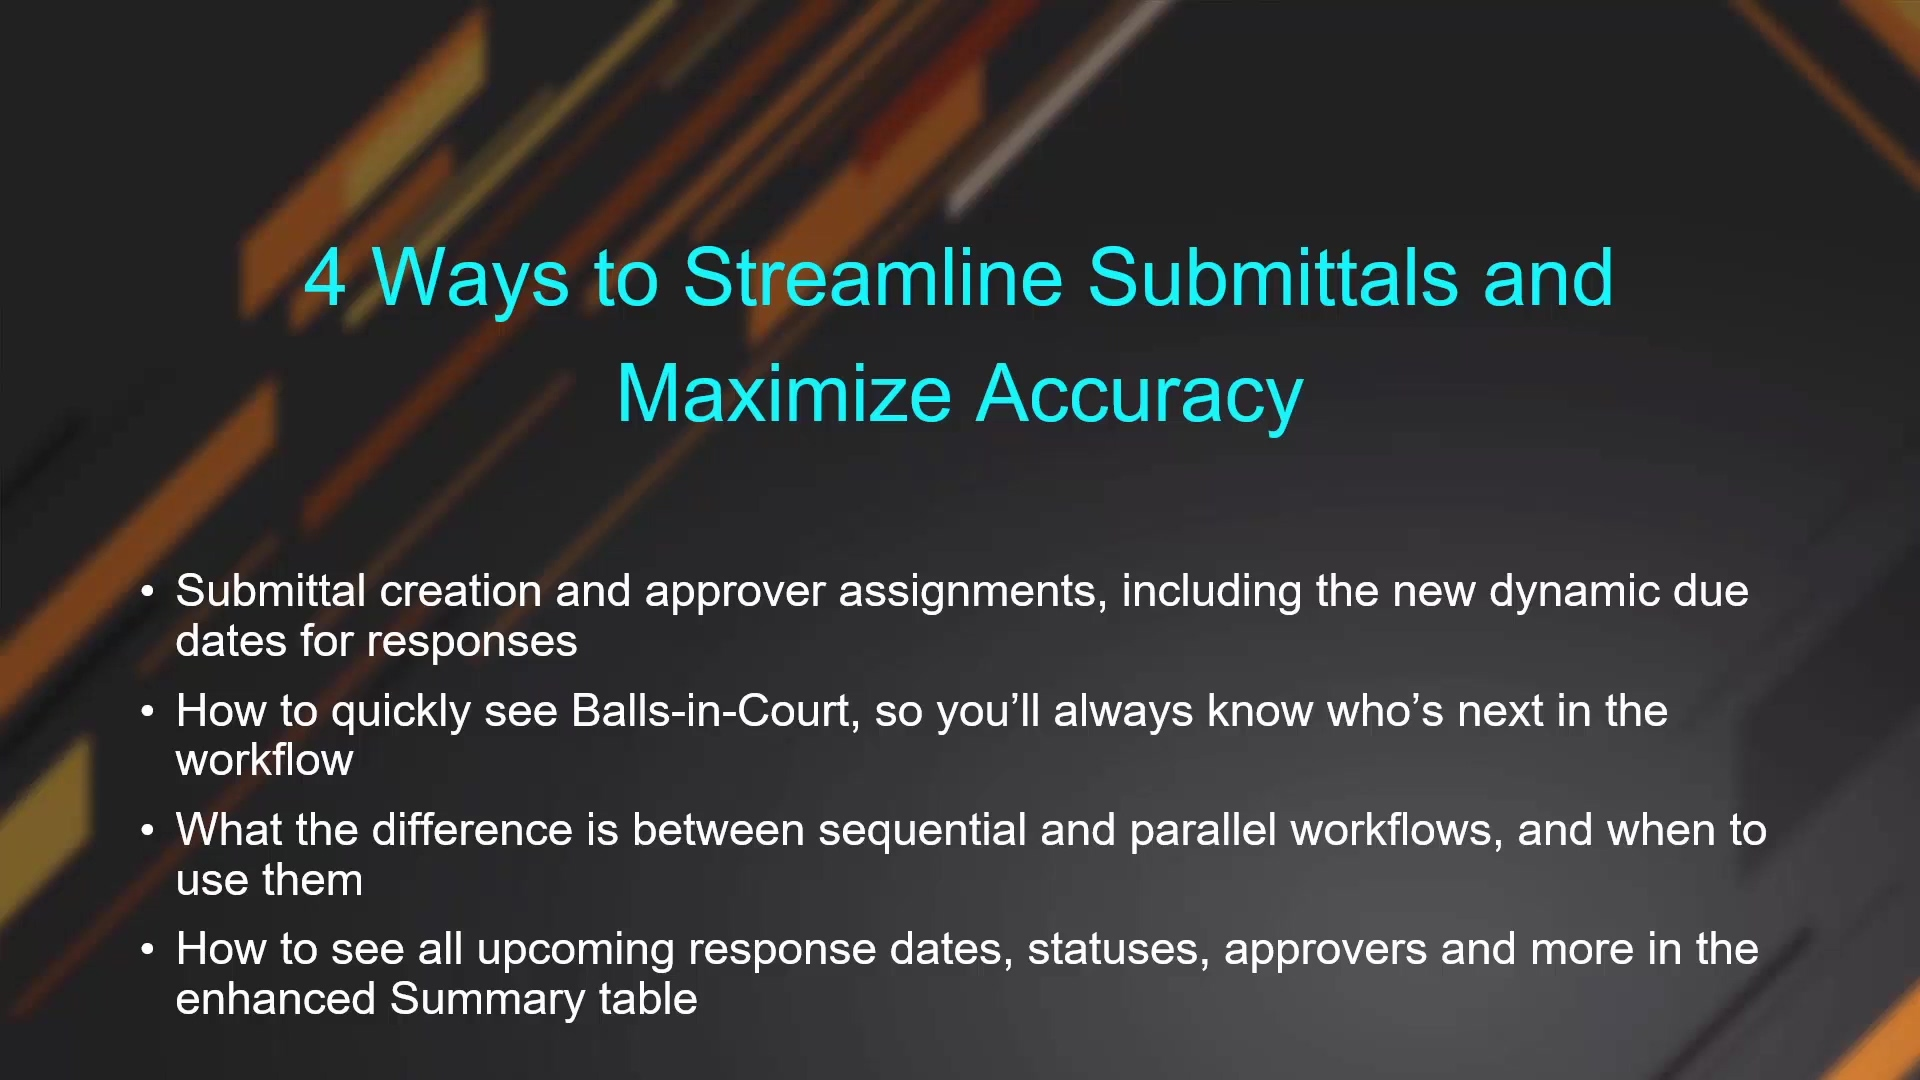 4 Ways to Streamline Submittals and Maximize Accuracy